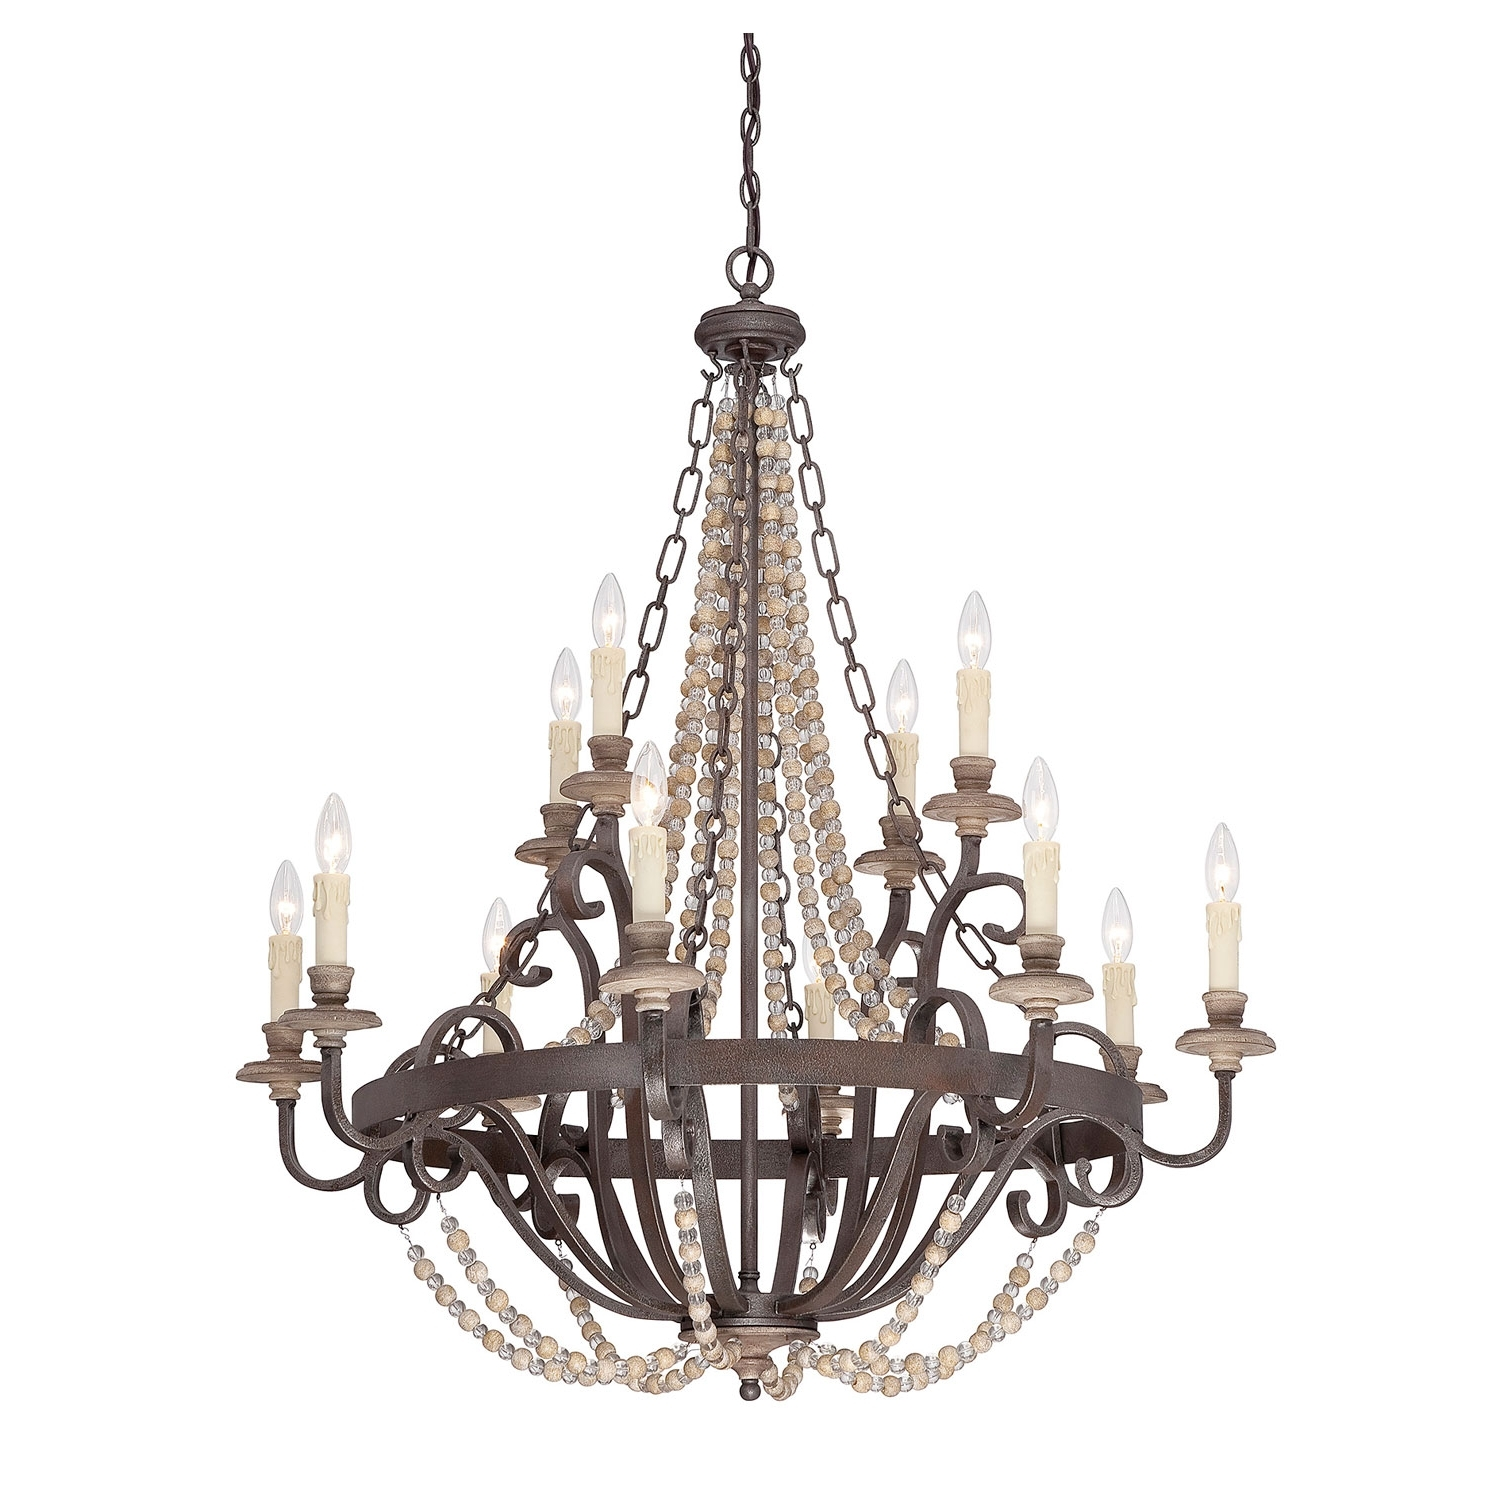 Candle Light Chandelier Regarding Widely Used Savoy House Mallory Bronze 12 Light Chandelier On Sale (View 11 of 15)